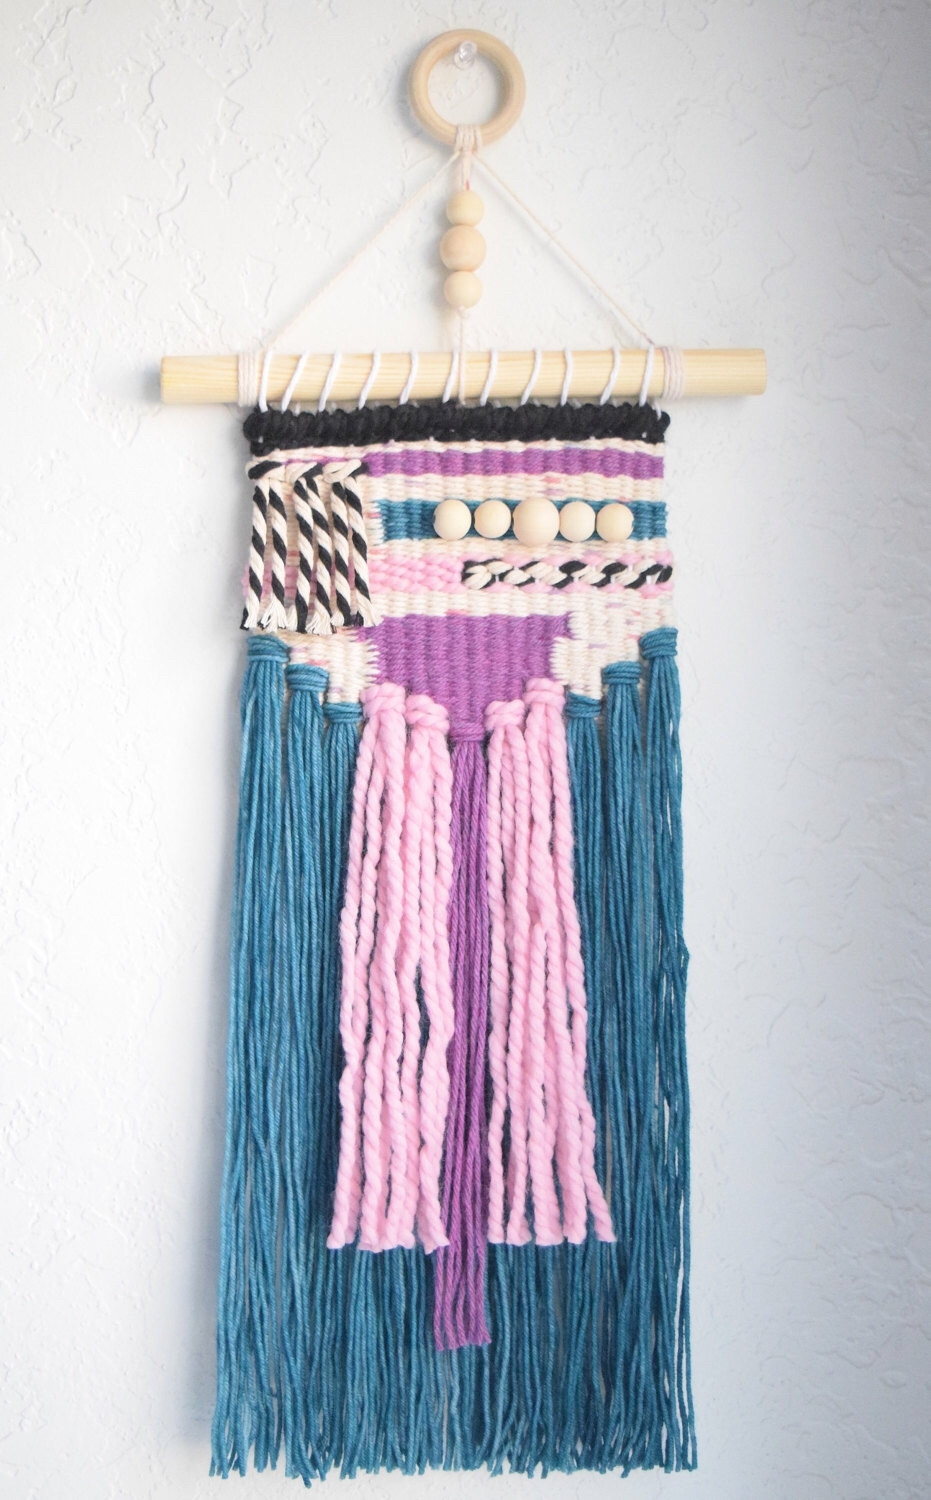 Woven Wall Art | Handwoven Tapestry Weaving | Woven Wall Hanging In Most Up To Date Woven Fabric Wall Art (View 6 of 15)